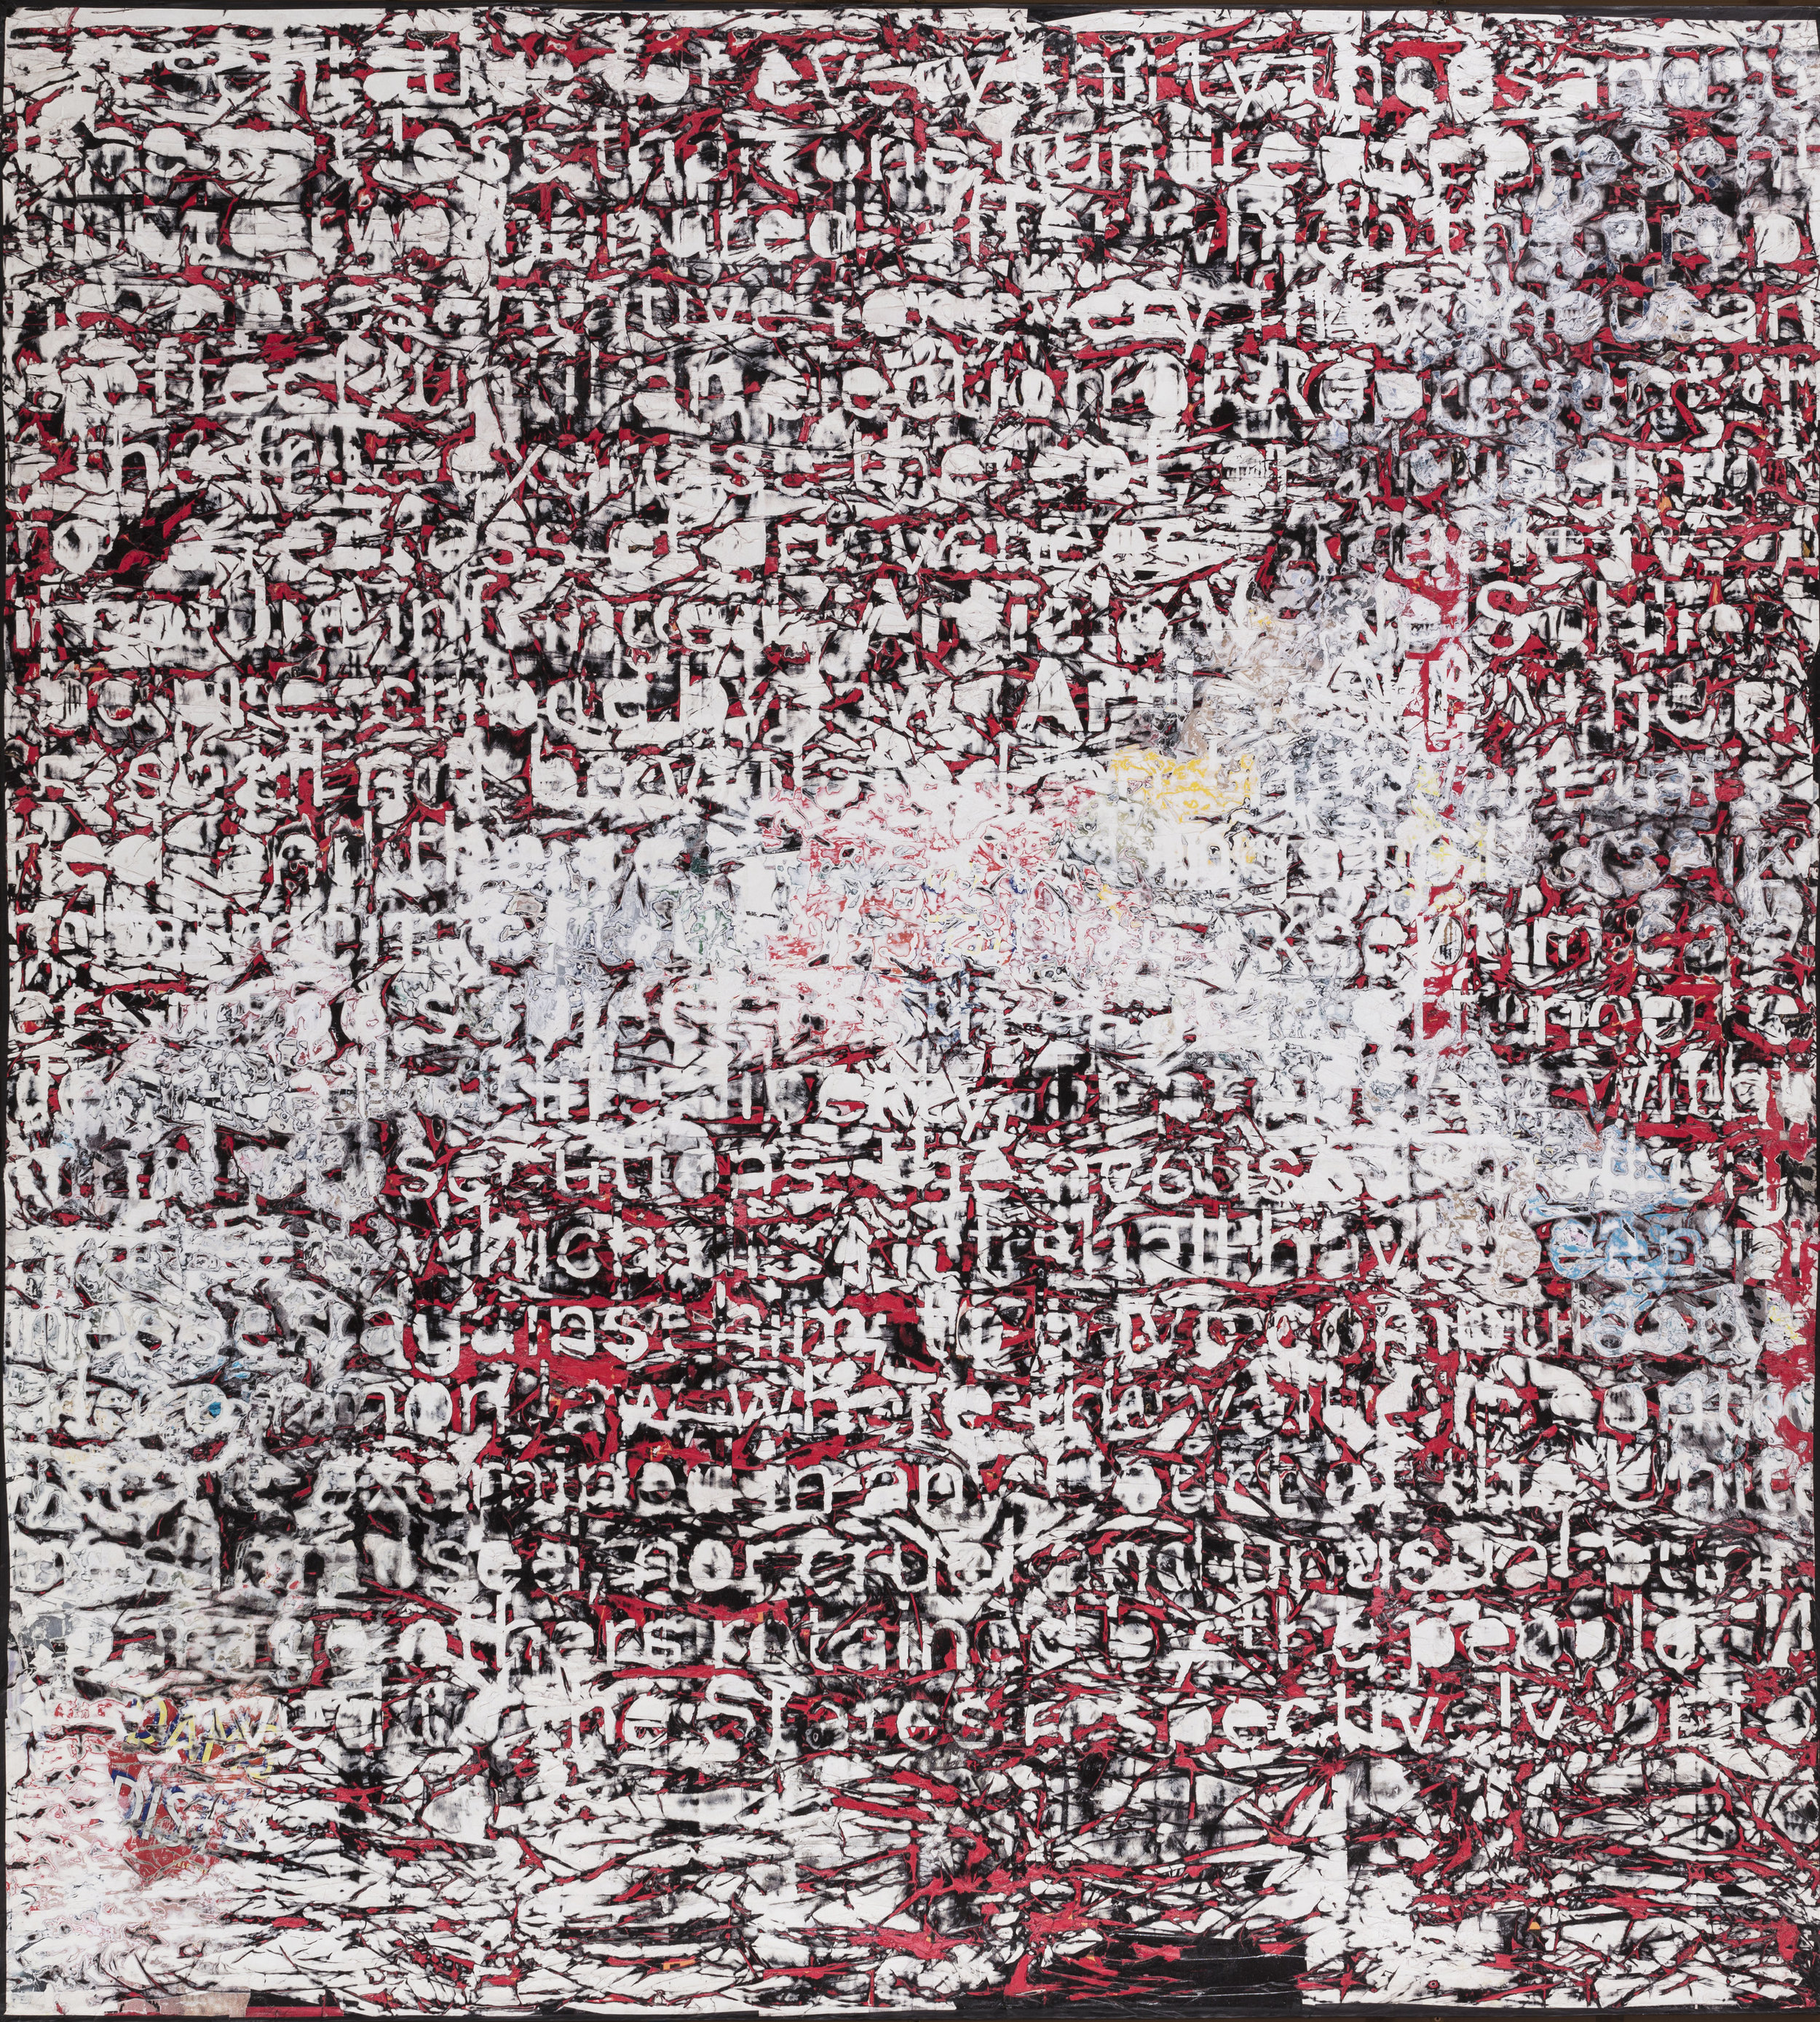 Mark Bradford  Constitution IV   , 2013  Mixed media on canvas 335.3 x 304.8 cm Collection Fondation Louis Vuitton, Paris. © 2019 Mark Bradford Picture: © Primae / David Bordes